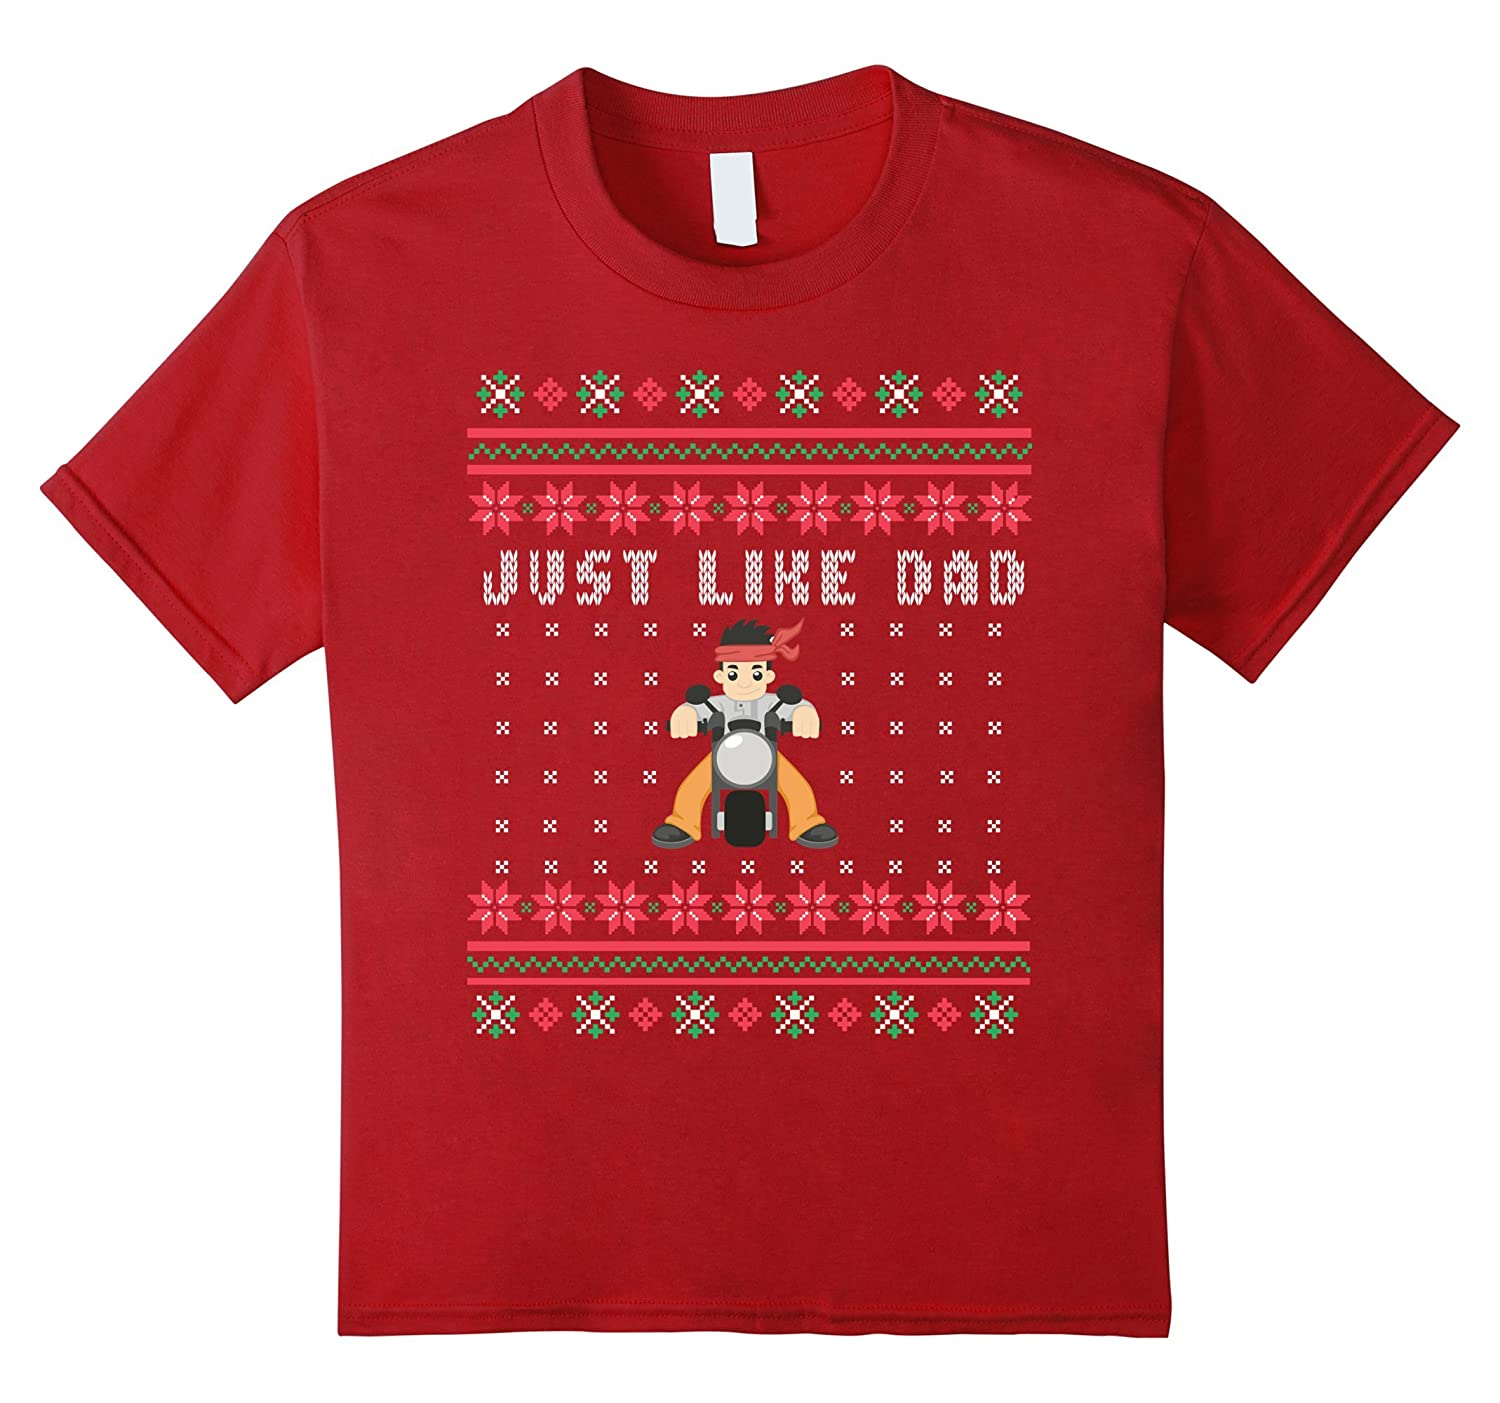 Biker Jr Motorcycle Ugly Christmas T-shirt